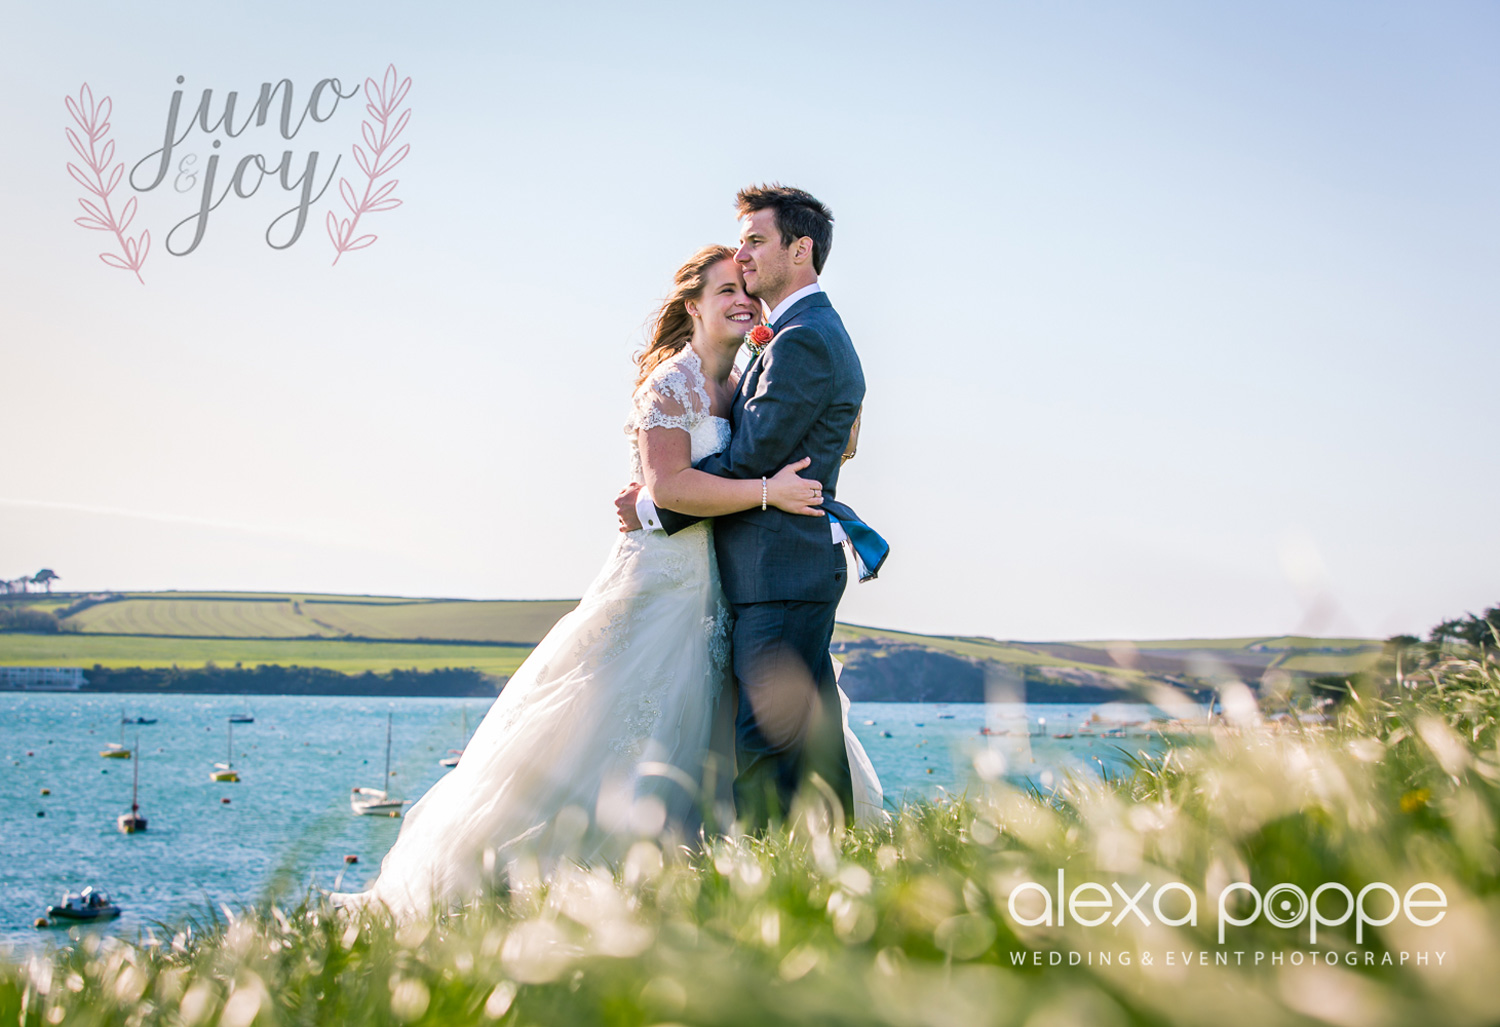 REAL WEDDING FEATURE // OLIVIA & JONATHAN  Olivia and Jonathan's colourful cornish coastal wedding featured on   Juno&Joy  . Their wedding planning was inspired by their immediate breathtaking surroundings of Rock in Cornwall. Filled with colour and DIY details their wedding is a showcase of beach bridal pretty...Read more about their wedding inspiration on   Juno&Joy   .